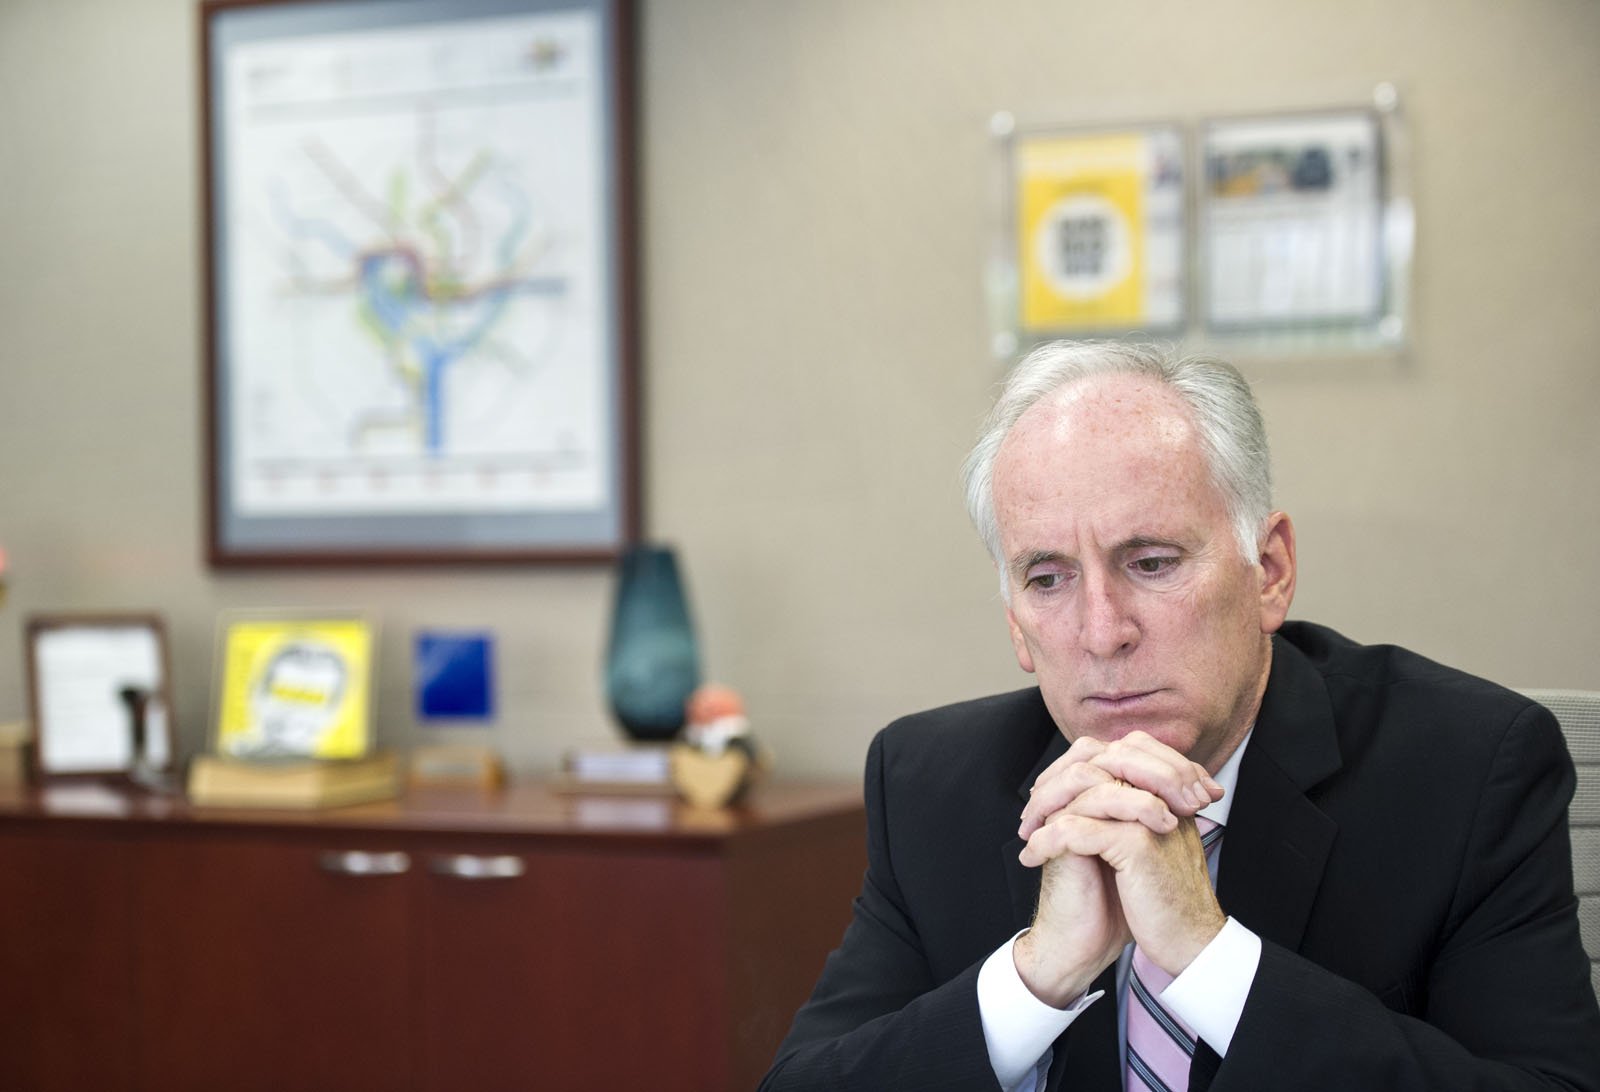 Washington Metropolitan Area Transit Authority (Metro) General Manager and Chief Executive Officer Paul Wiedefeld is seen in his office in Washington, Thursday, July 7, 2016. (AP Photo/Cliff Owen)